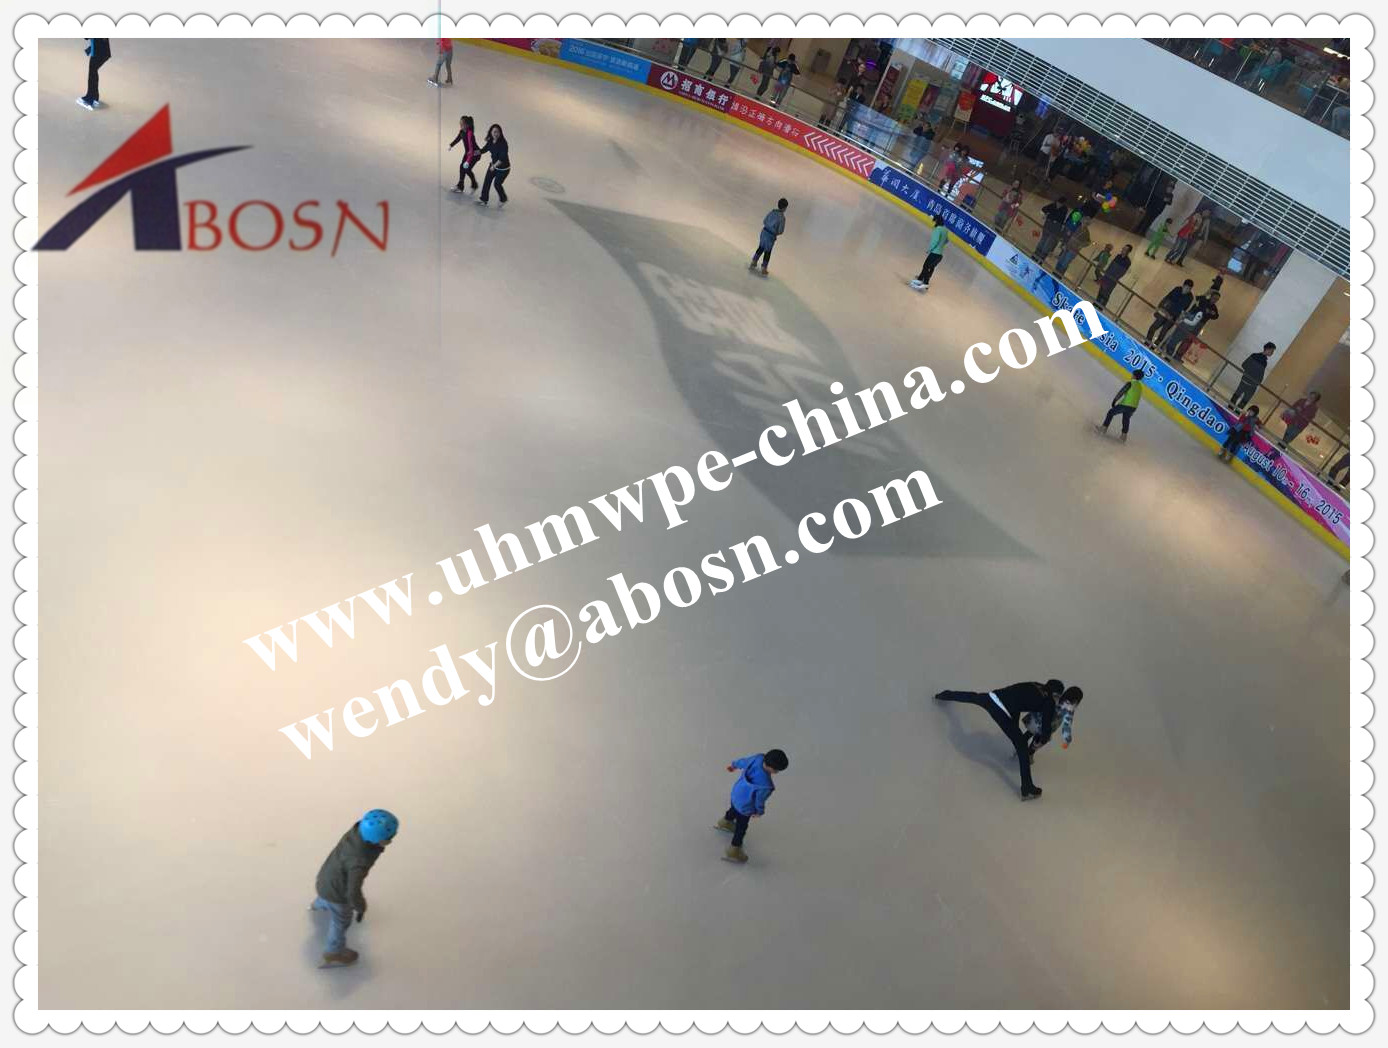 Solid Polymer Synthetic Ice Rink Designed for Skating